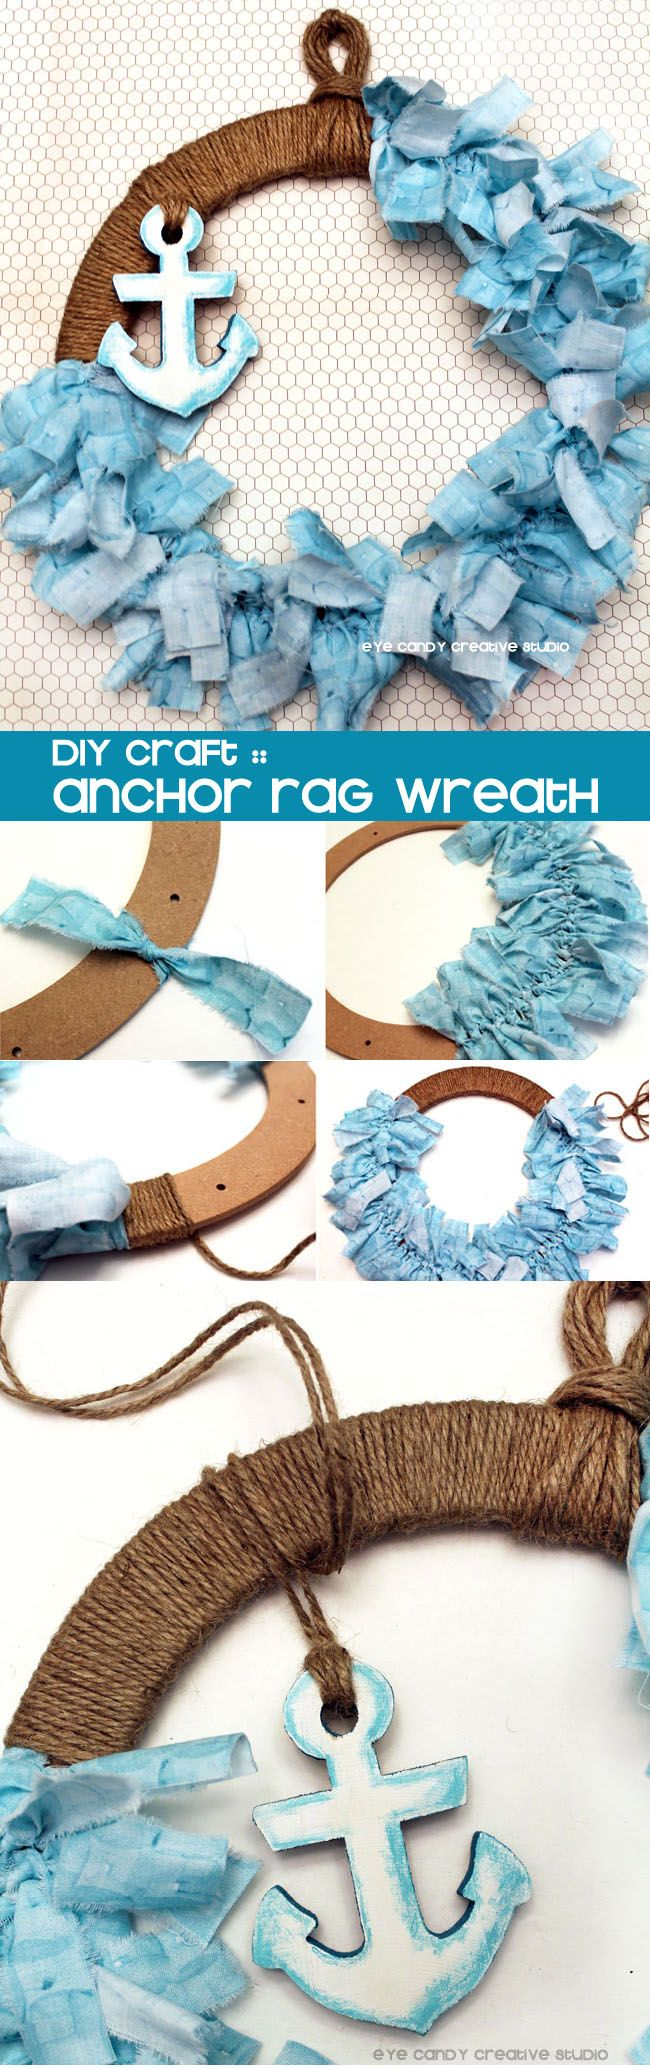 Nautical crafts to make - Summer Camp Diy Nautical Anchor Rag Wreath